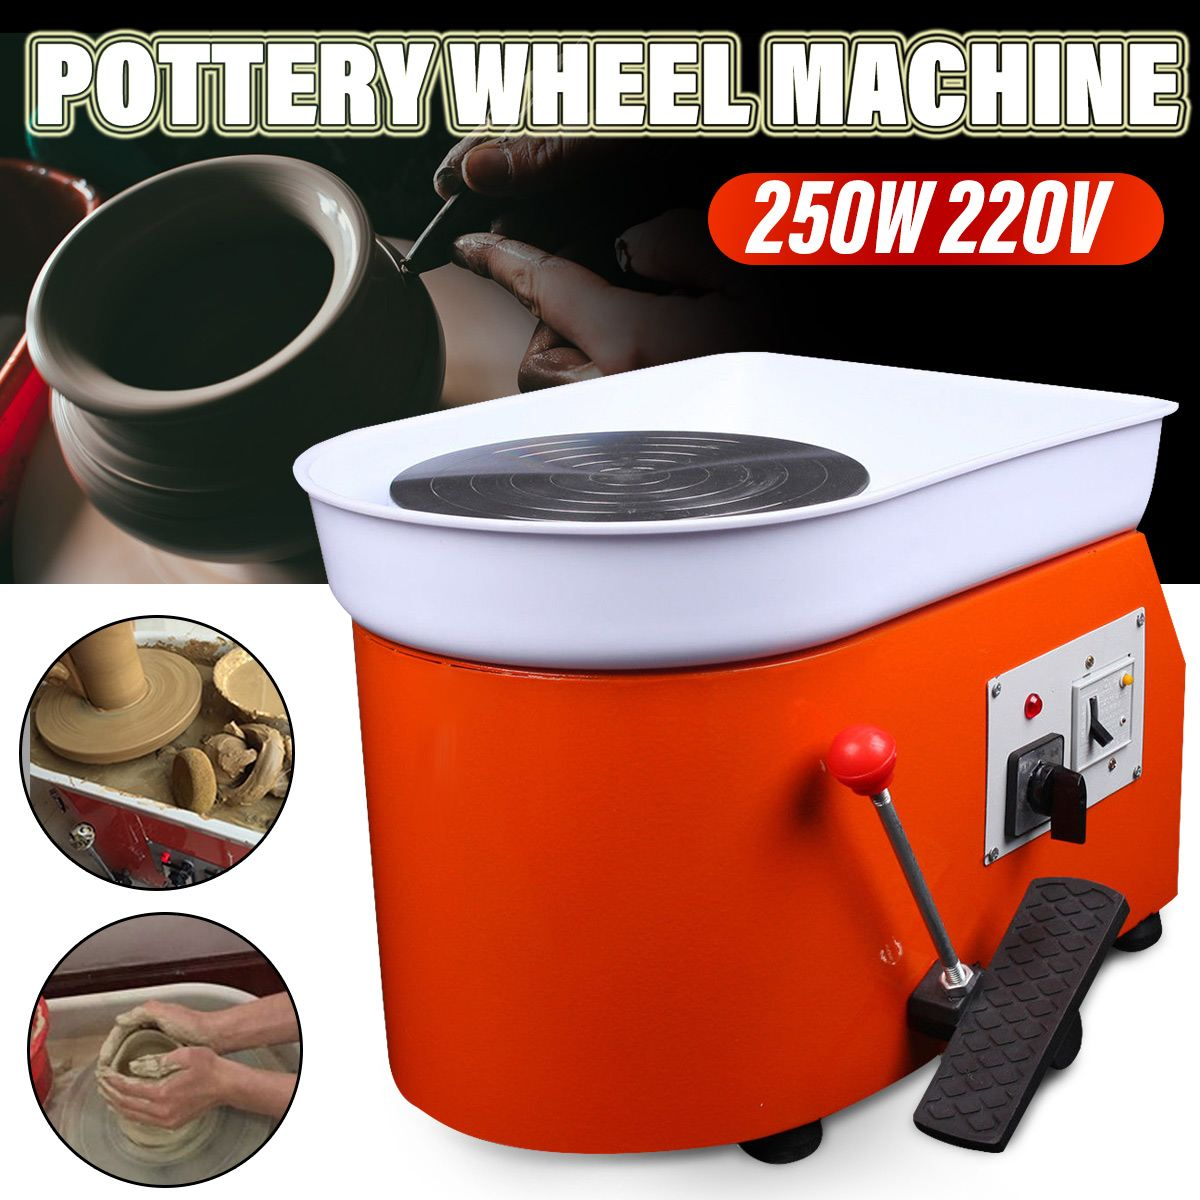 110V/220V Pottery Forming Machine Ceramic Work 250W Electric Pottery Wheel DIY Clay Tool with Tray + Foot Pedal for Home Use